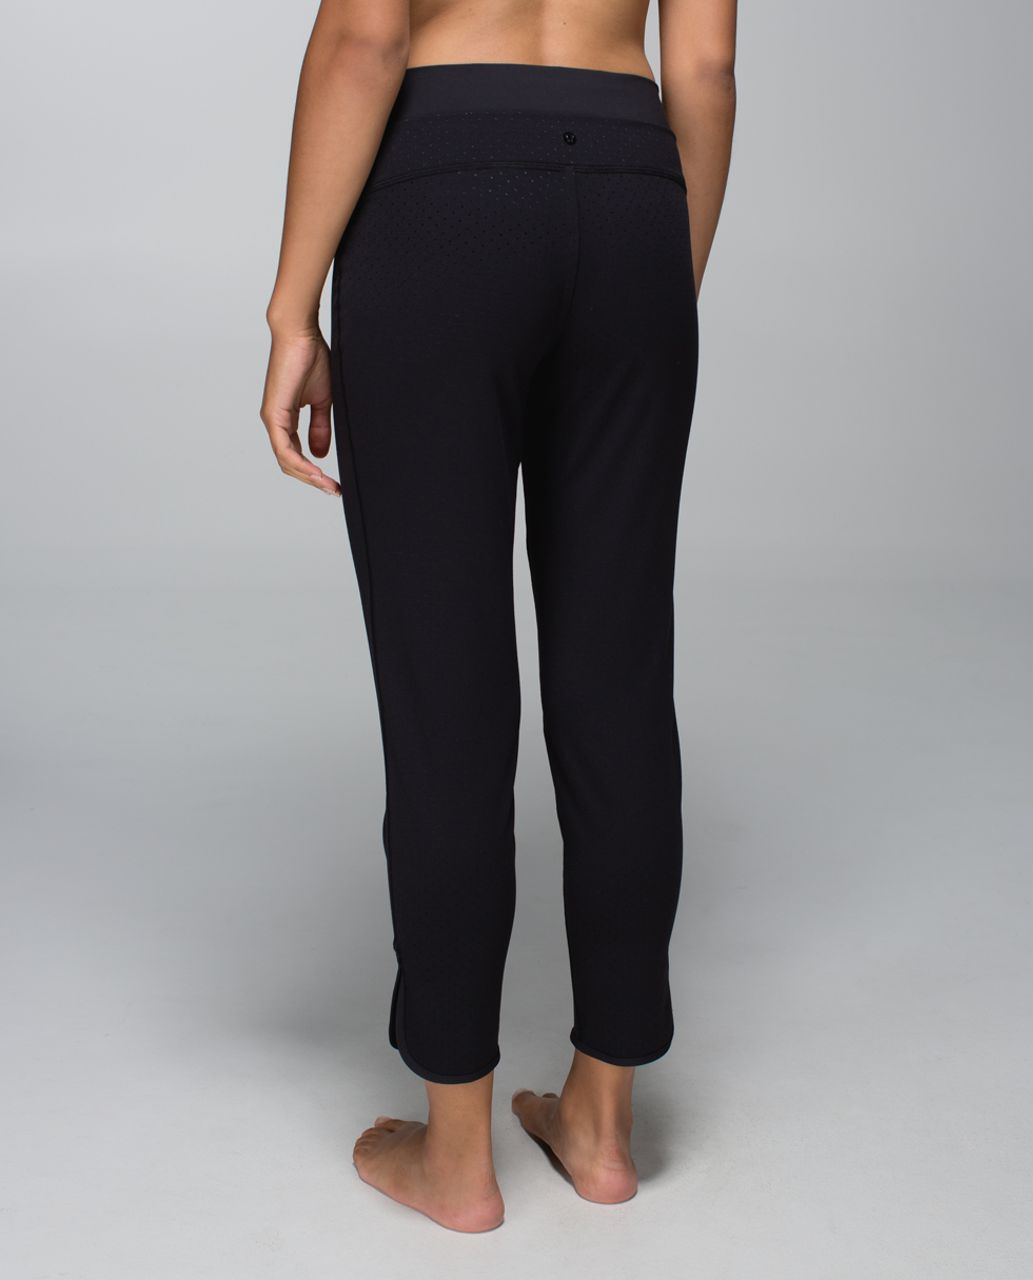 Lululemon Straight To Class Pant *Full-On-Luon - Shine Dot Black / Black